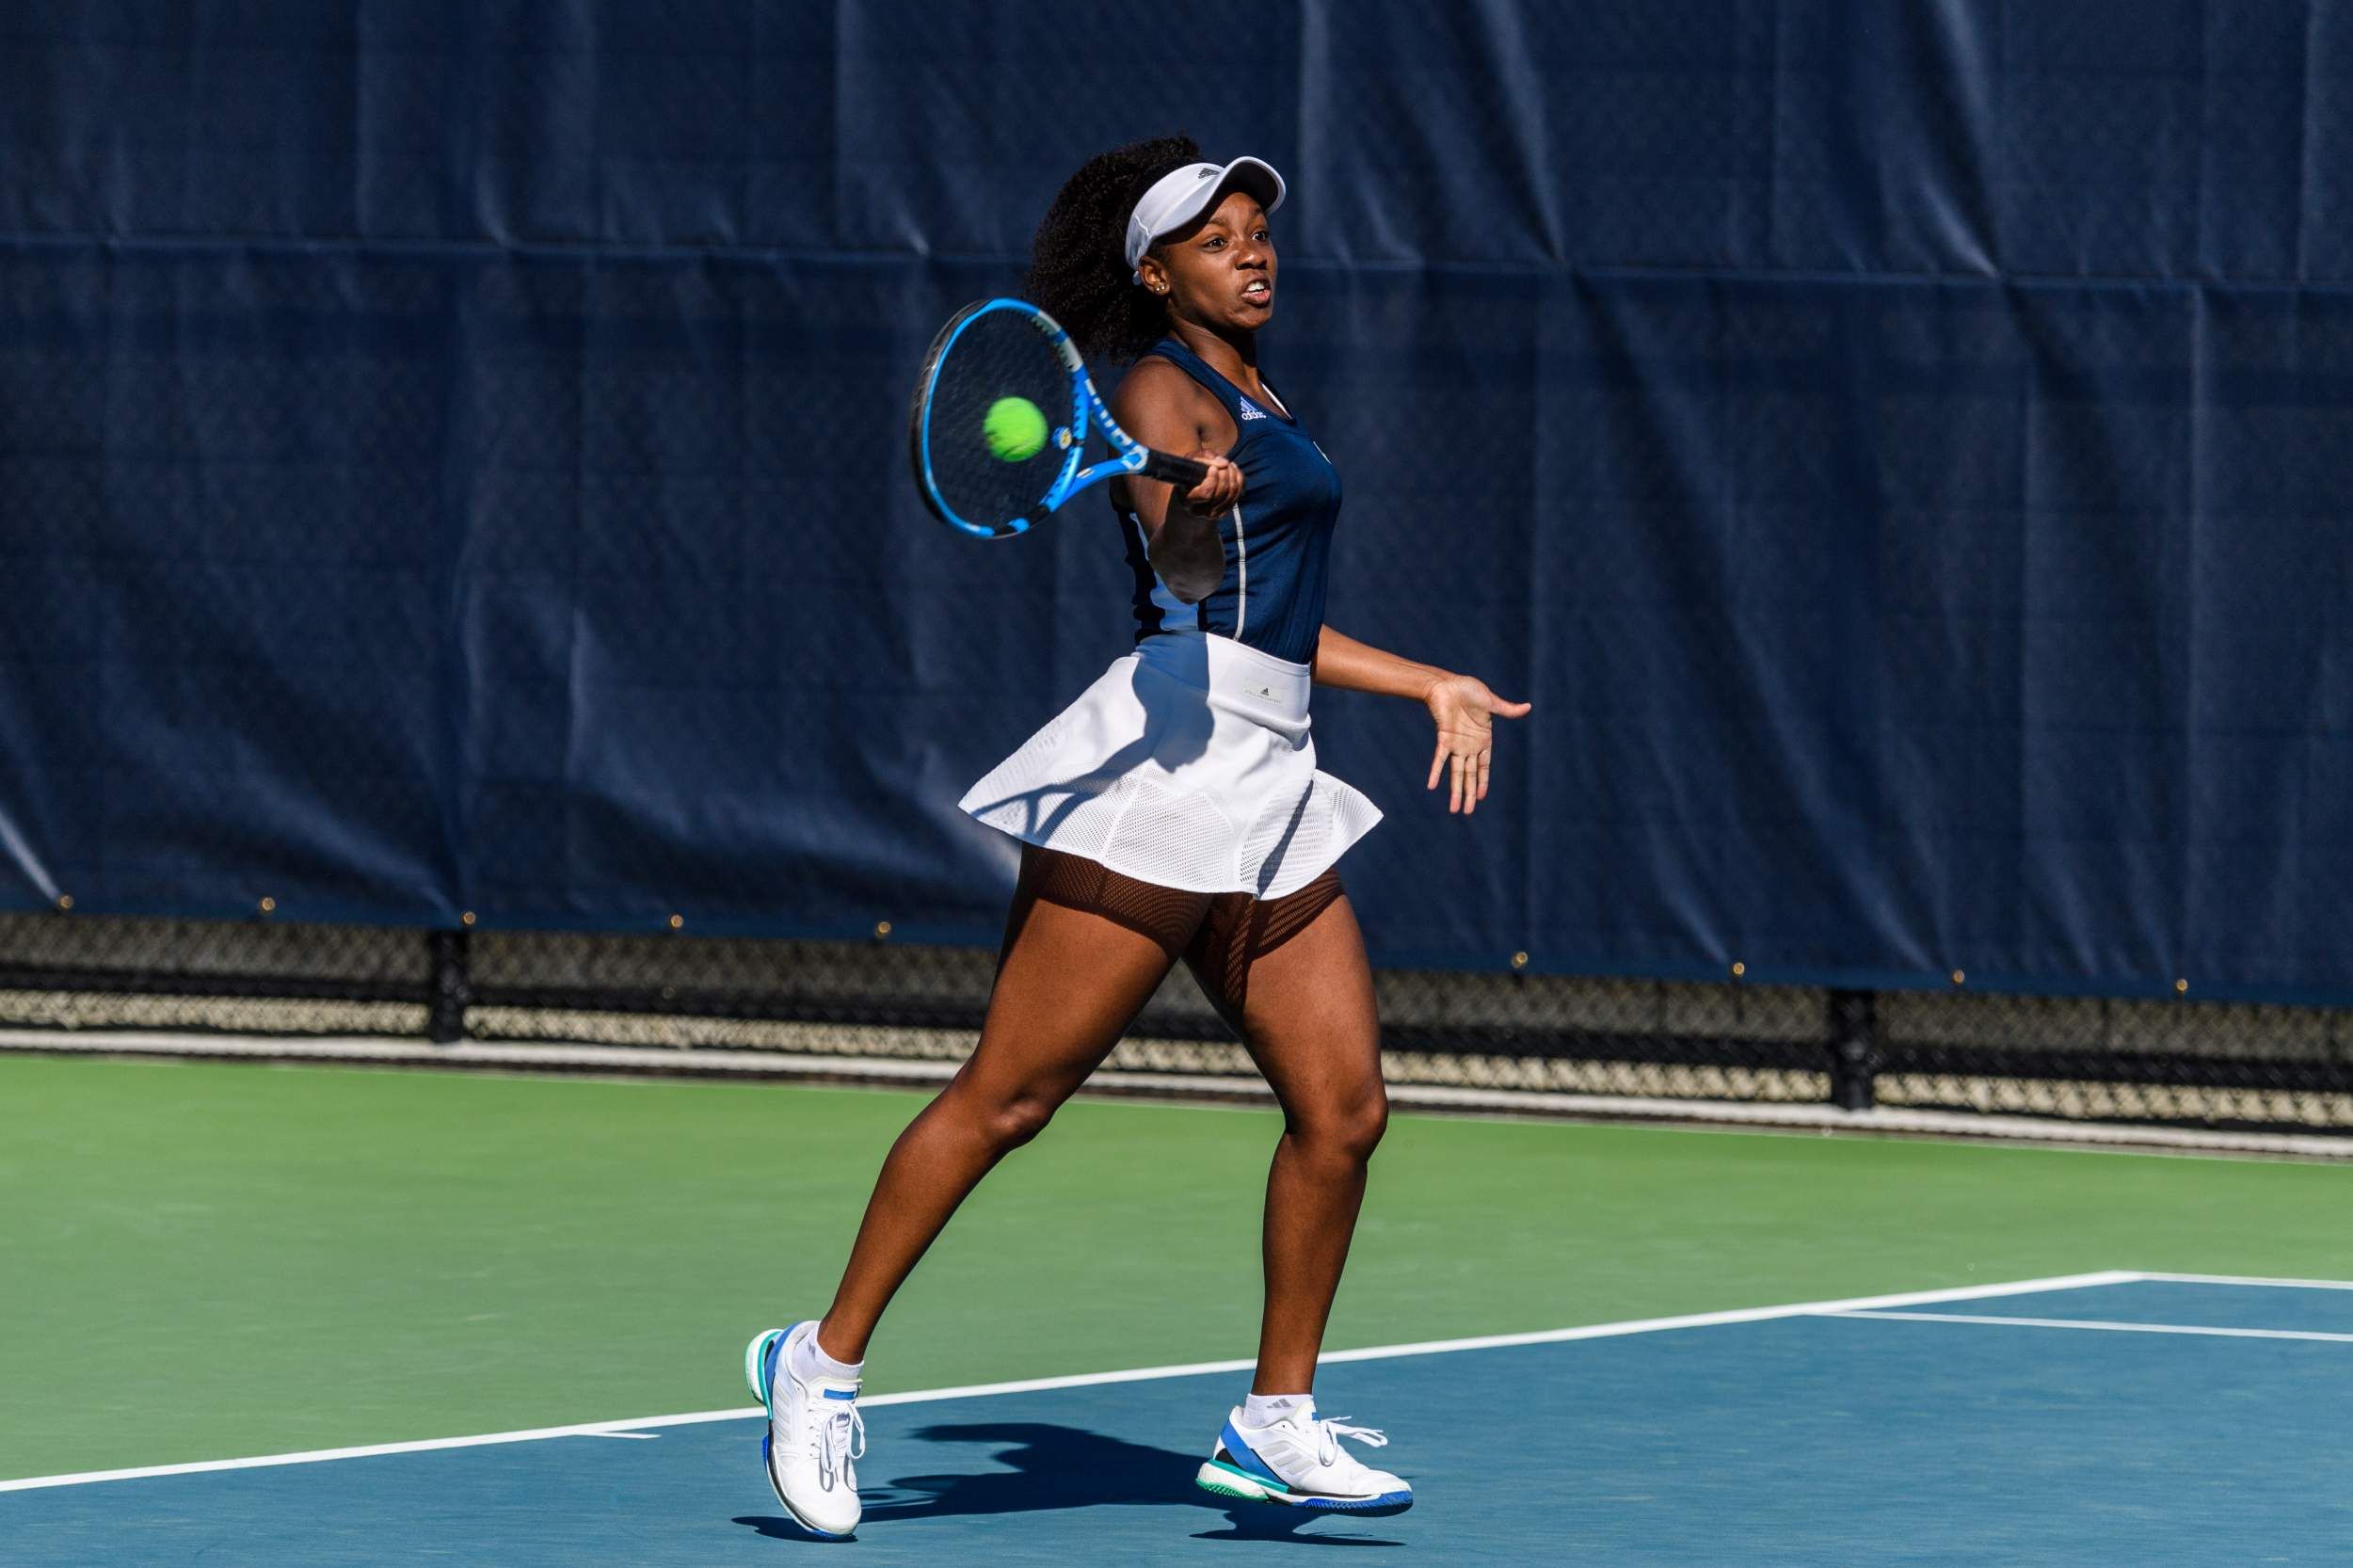 Strong Singles Action Lifts Jackets Over Eagles, 5-2